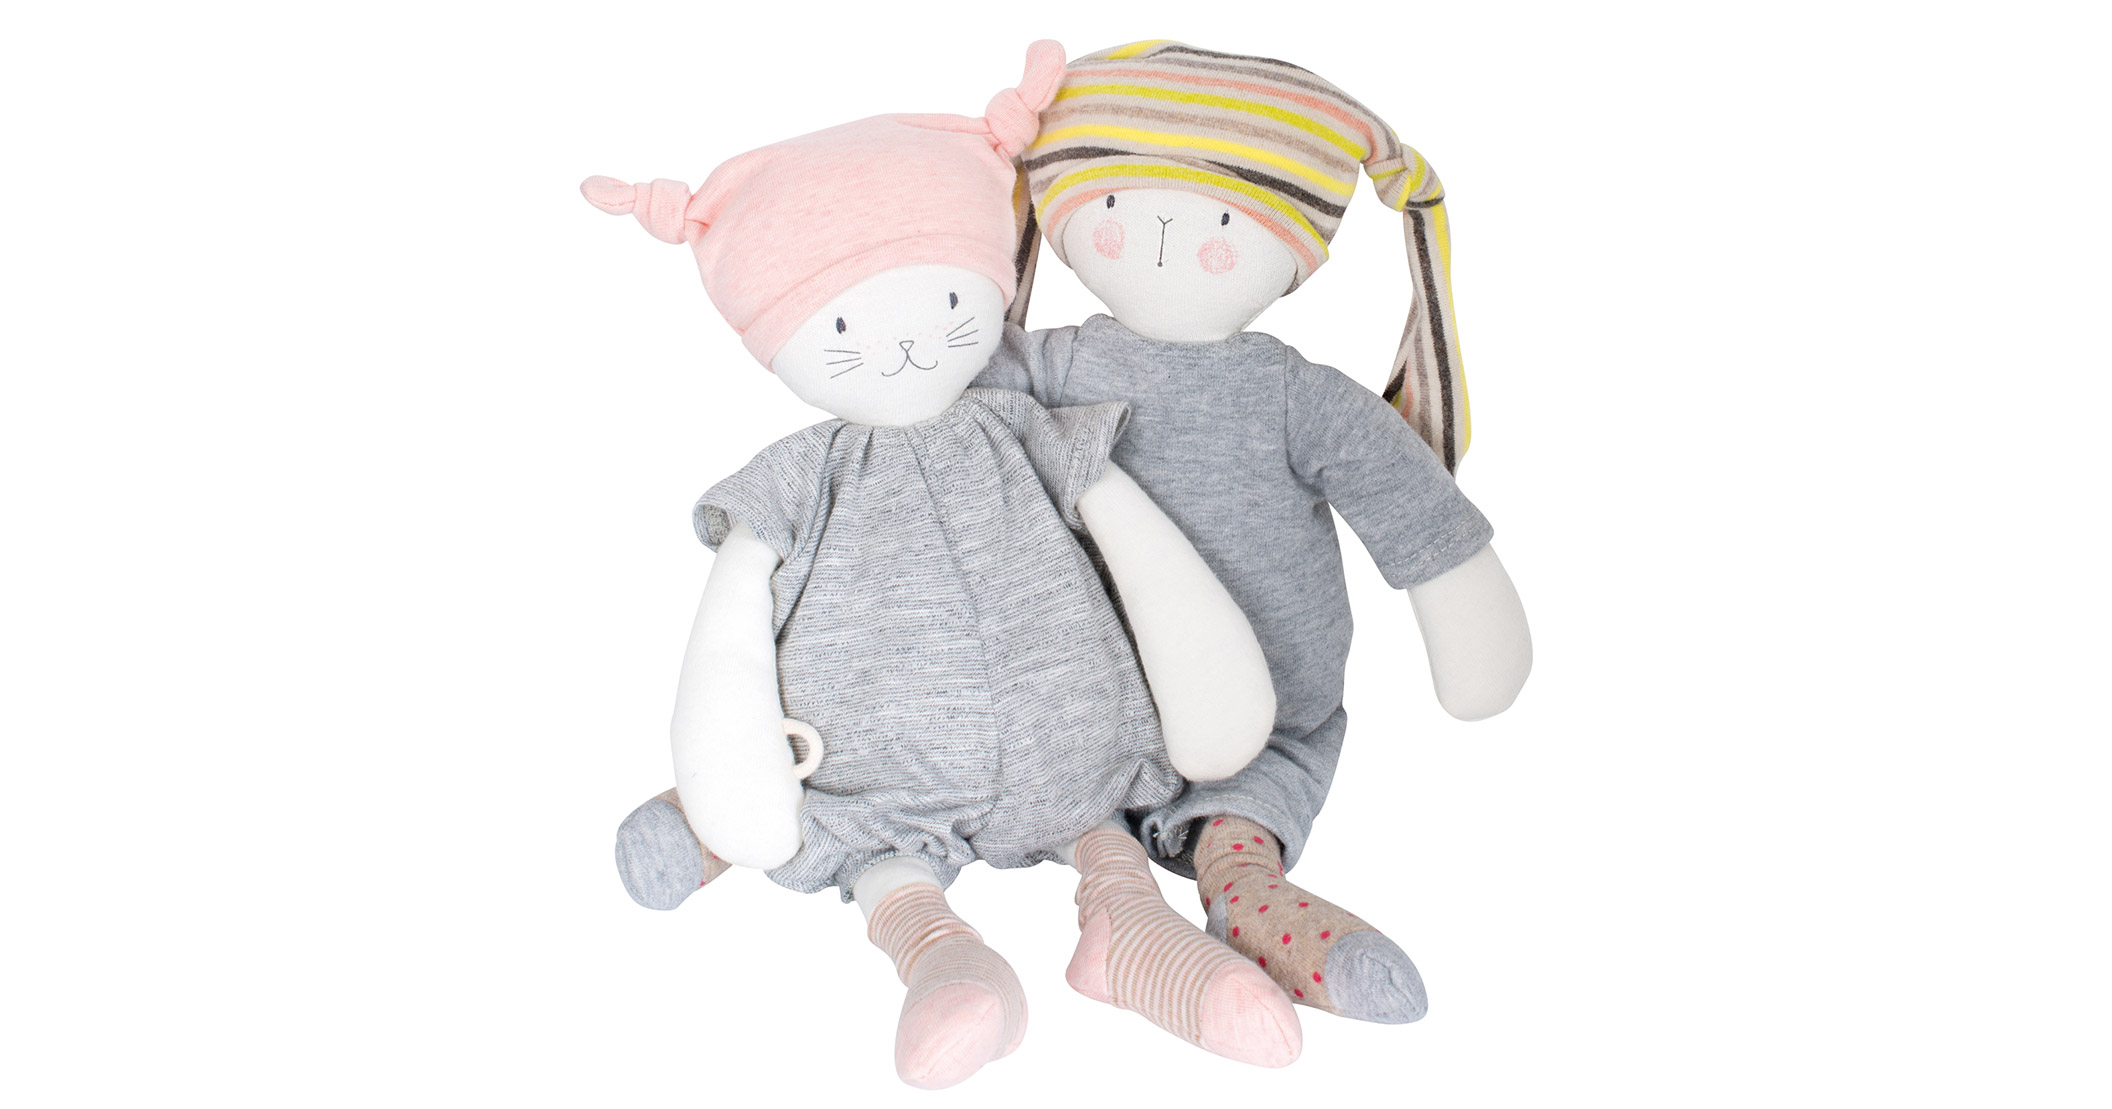 MOULIN ROTY'S LES PETIT DODOS COLLECTION